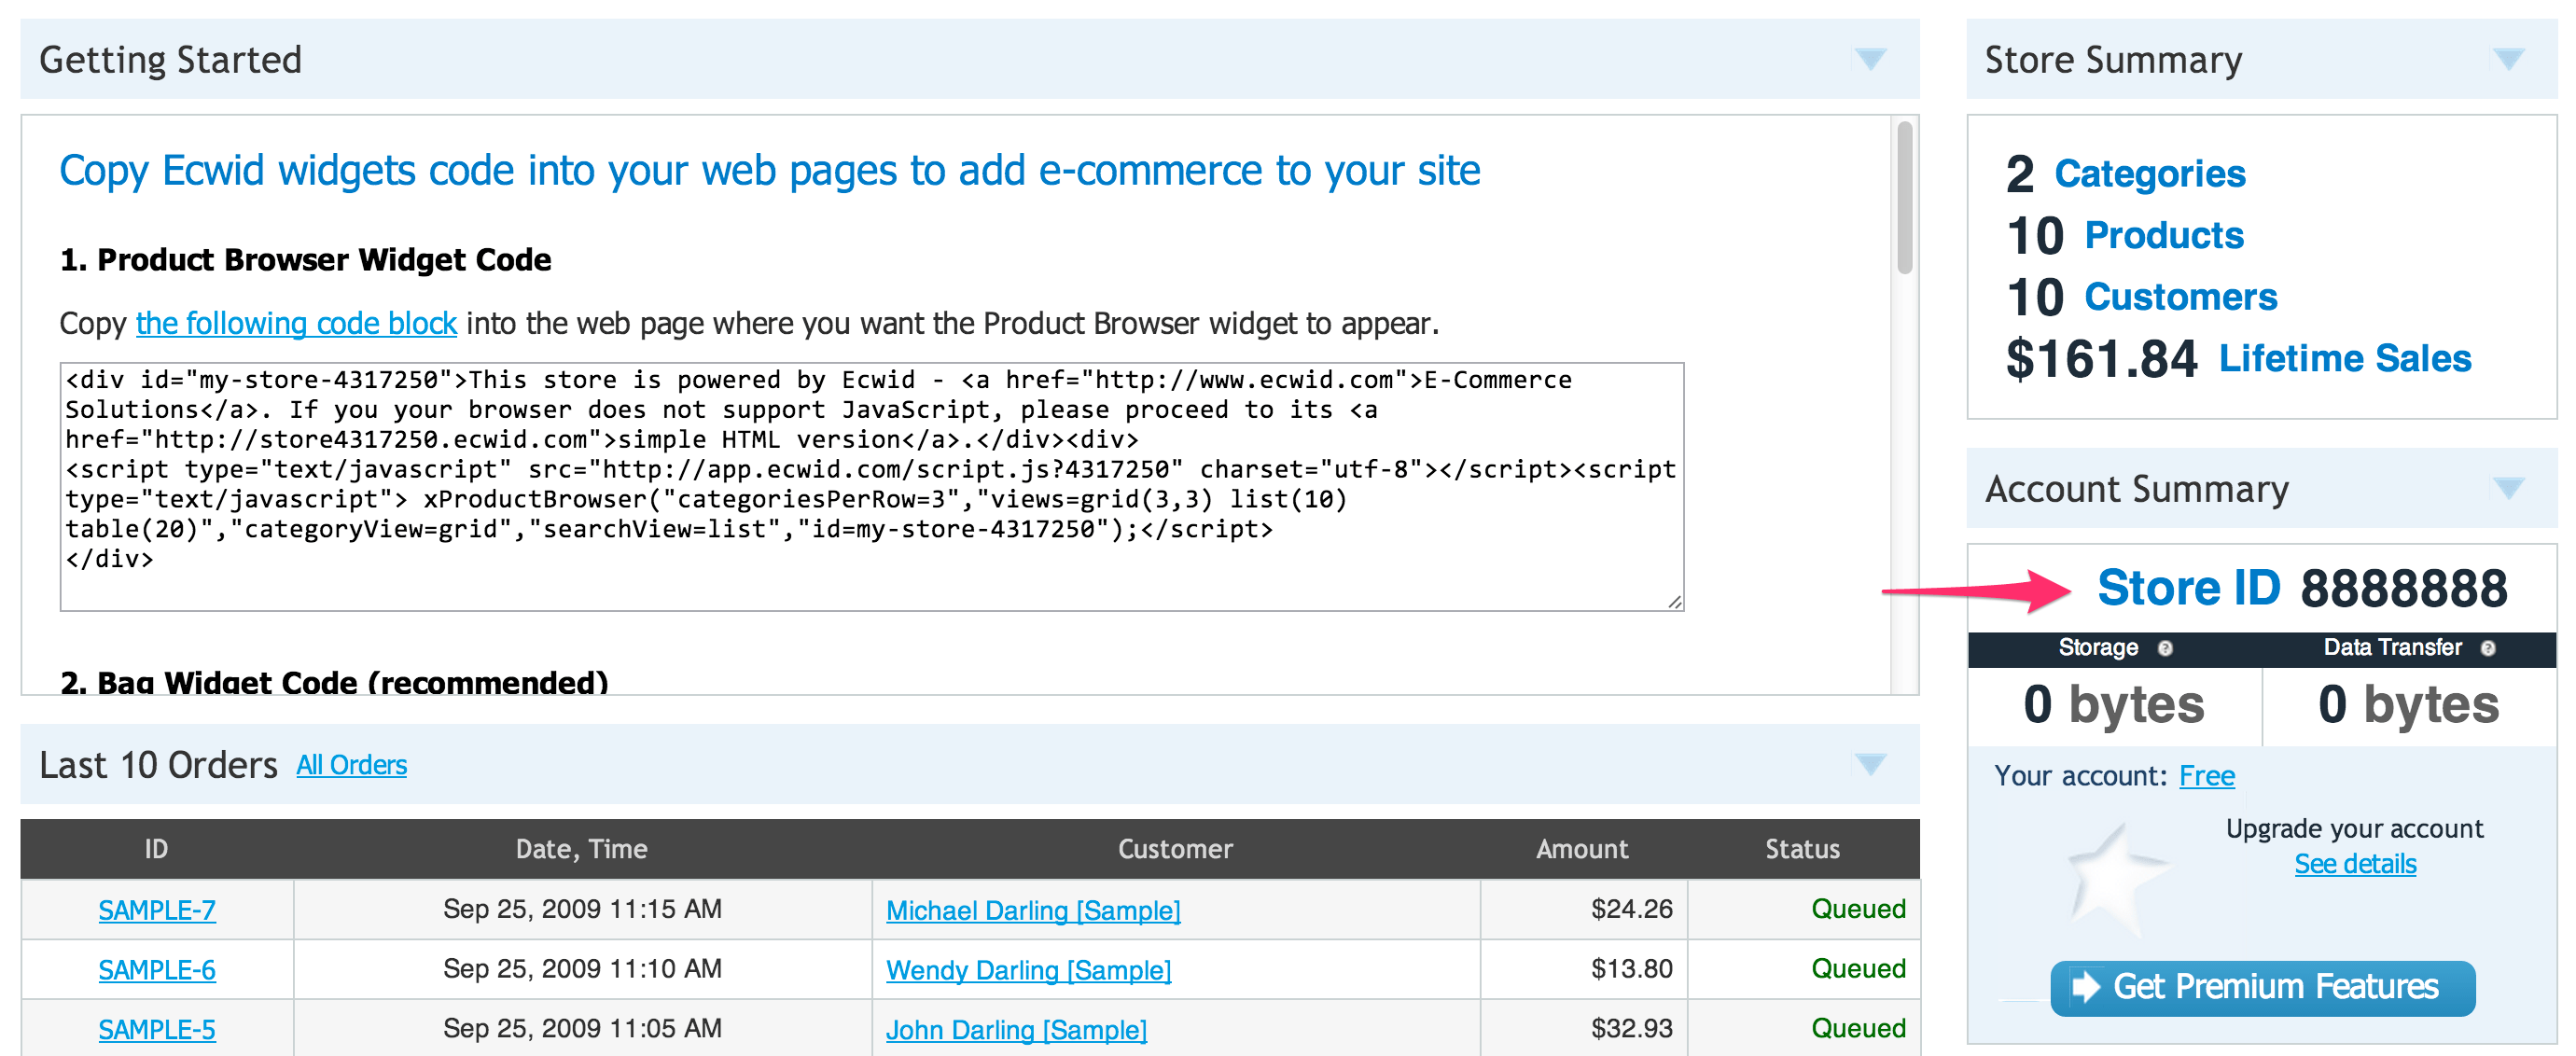 You can find your store ID in your Ecwid dashboard, under Account Summary